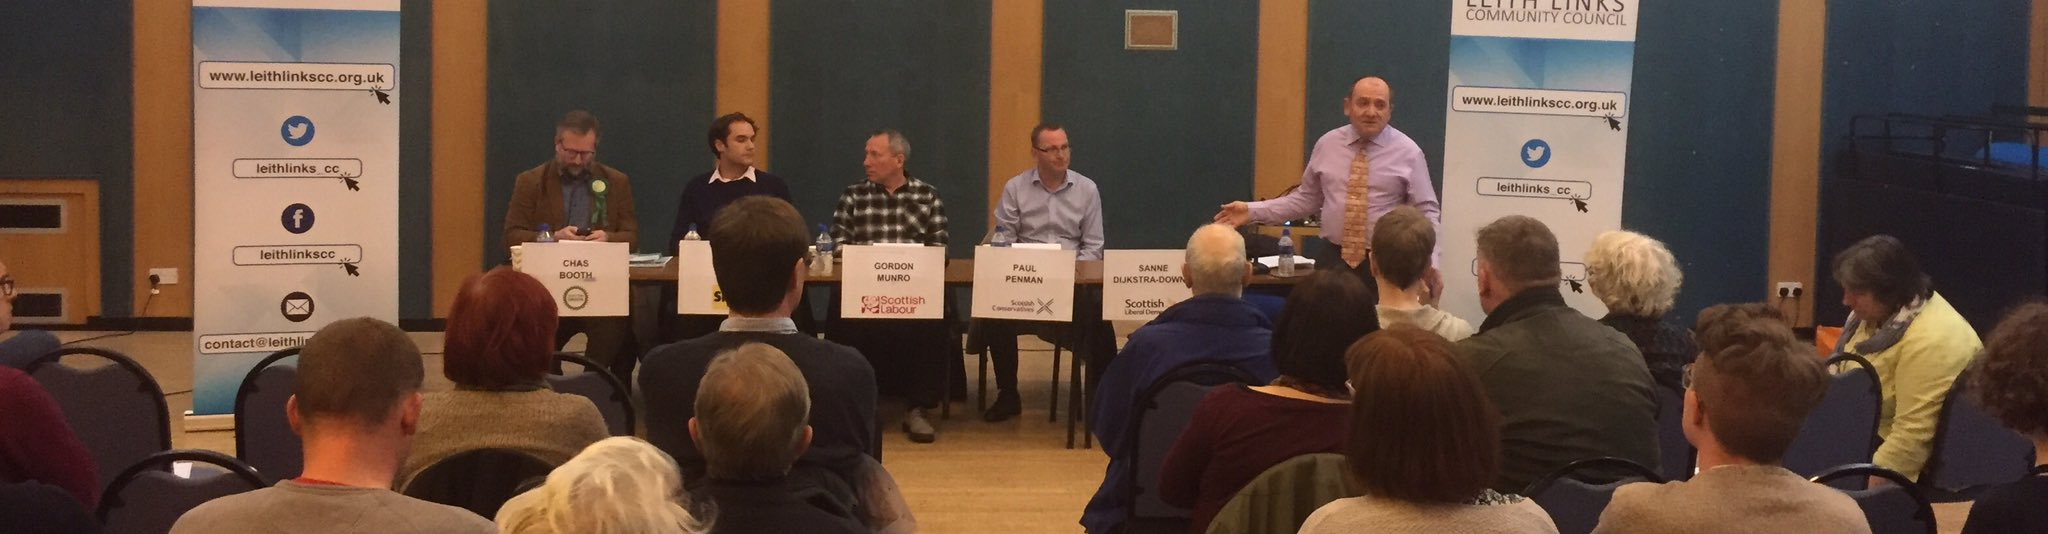 Chairman Jim welcomes everyone and gets the hustings started. #LeithHustings #Leith https://t.co/znbRWSvIvD